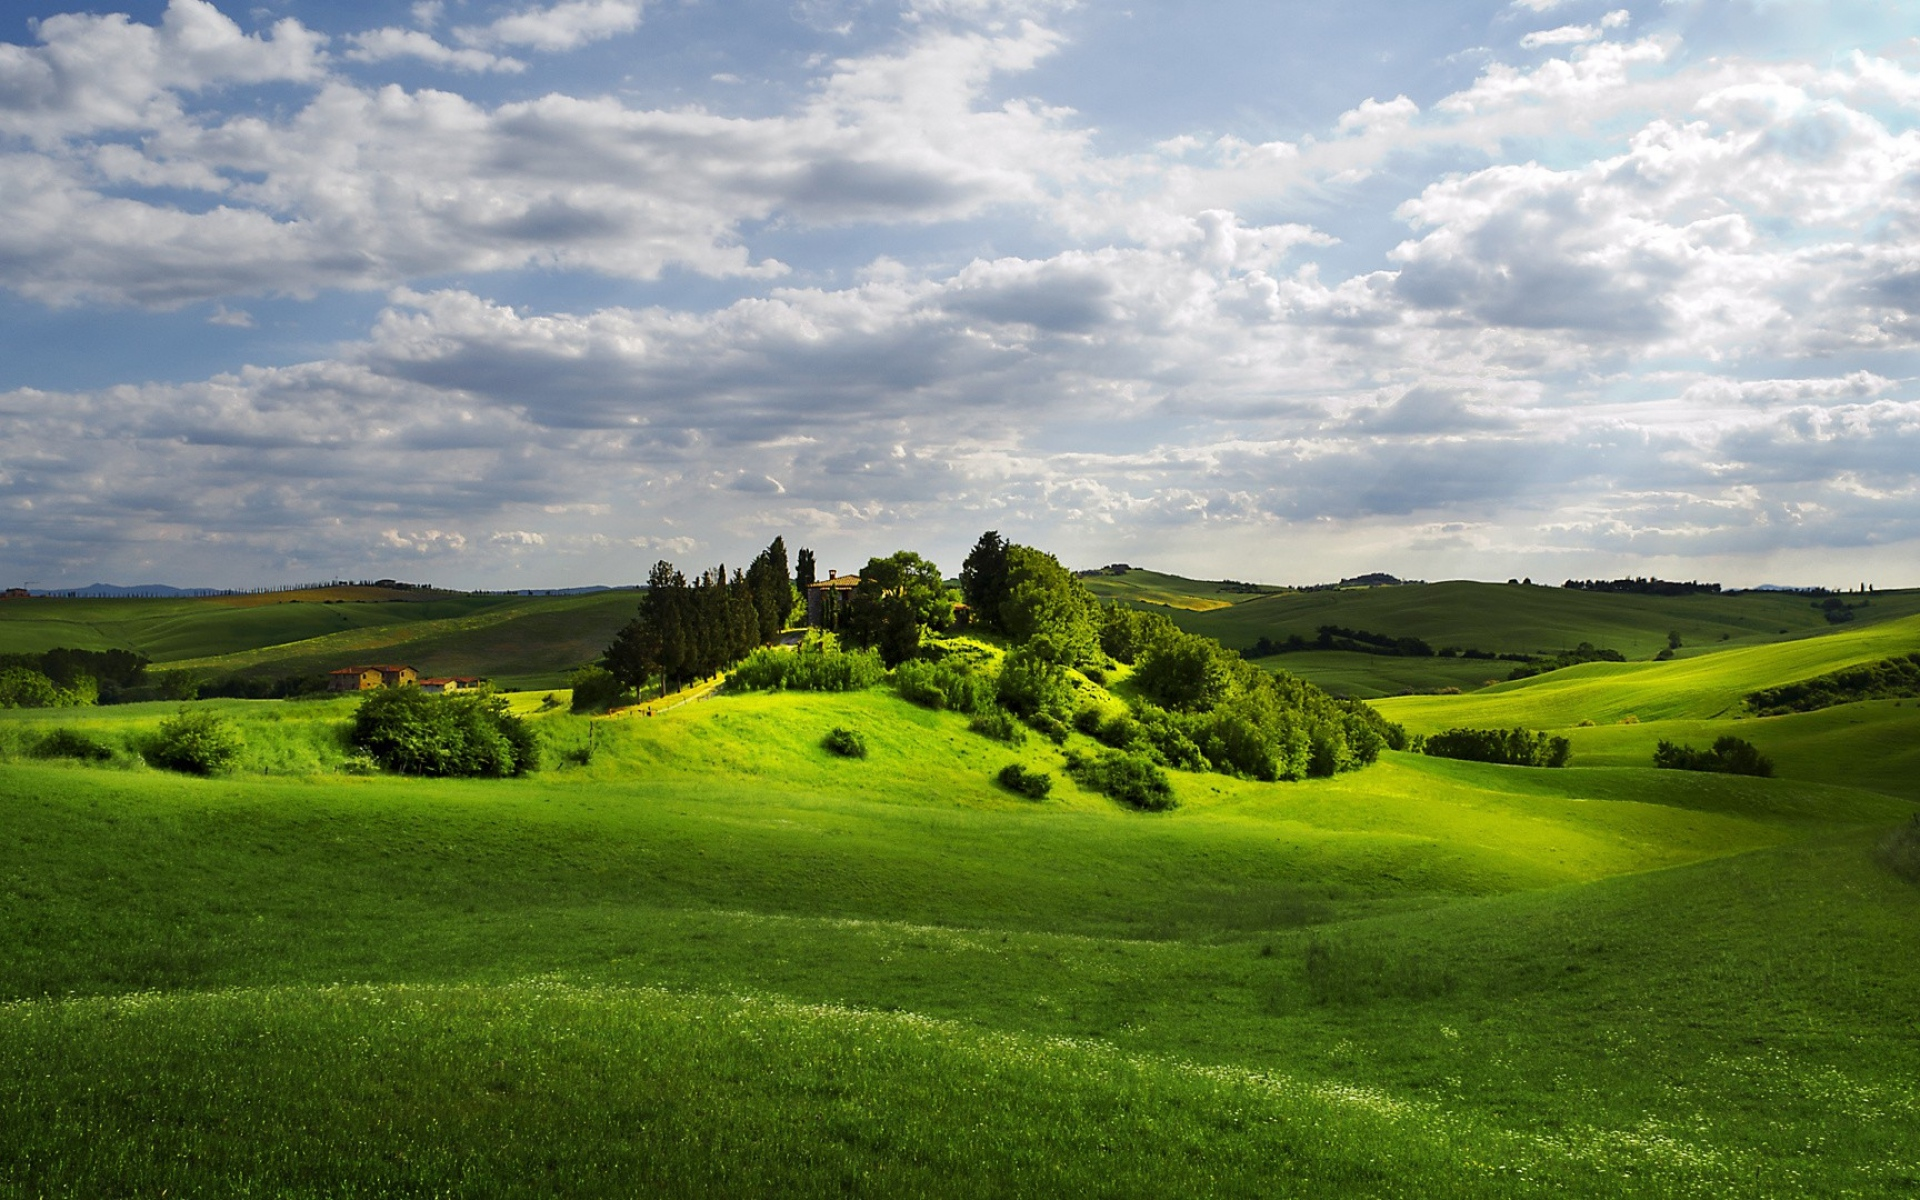 Trees Field Hills Houses Cloud Wallpapers Trees Field